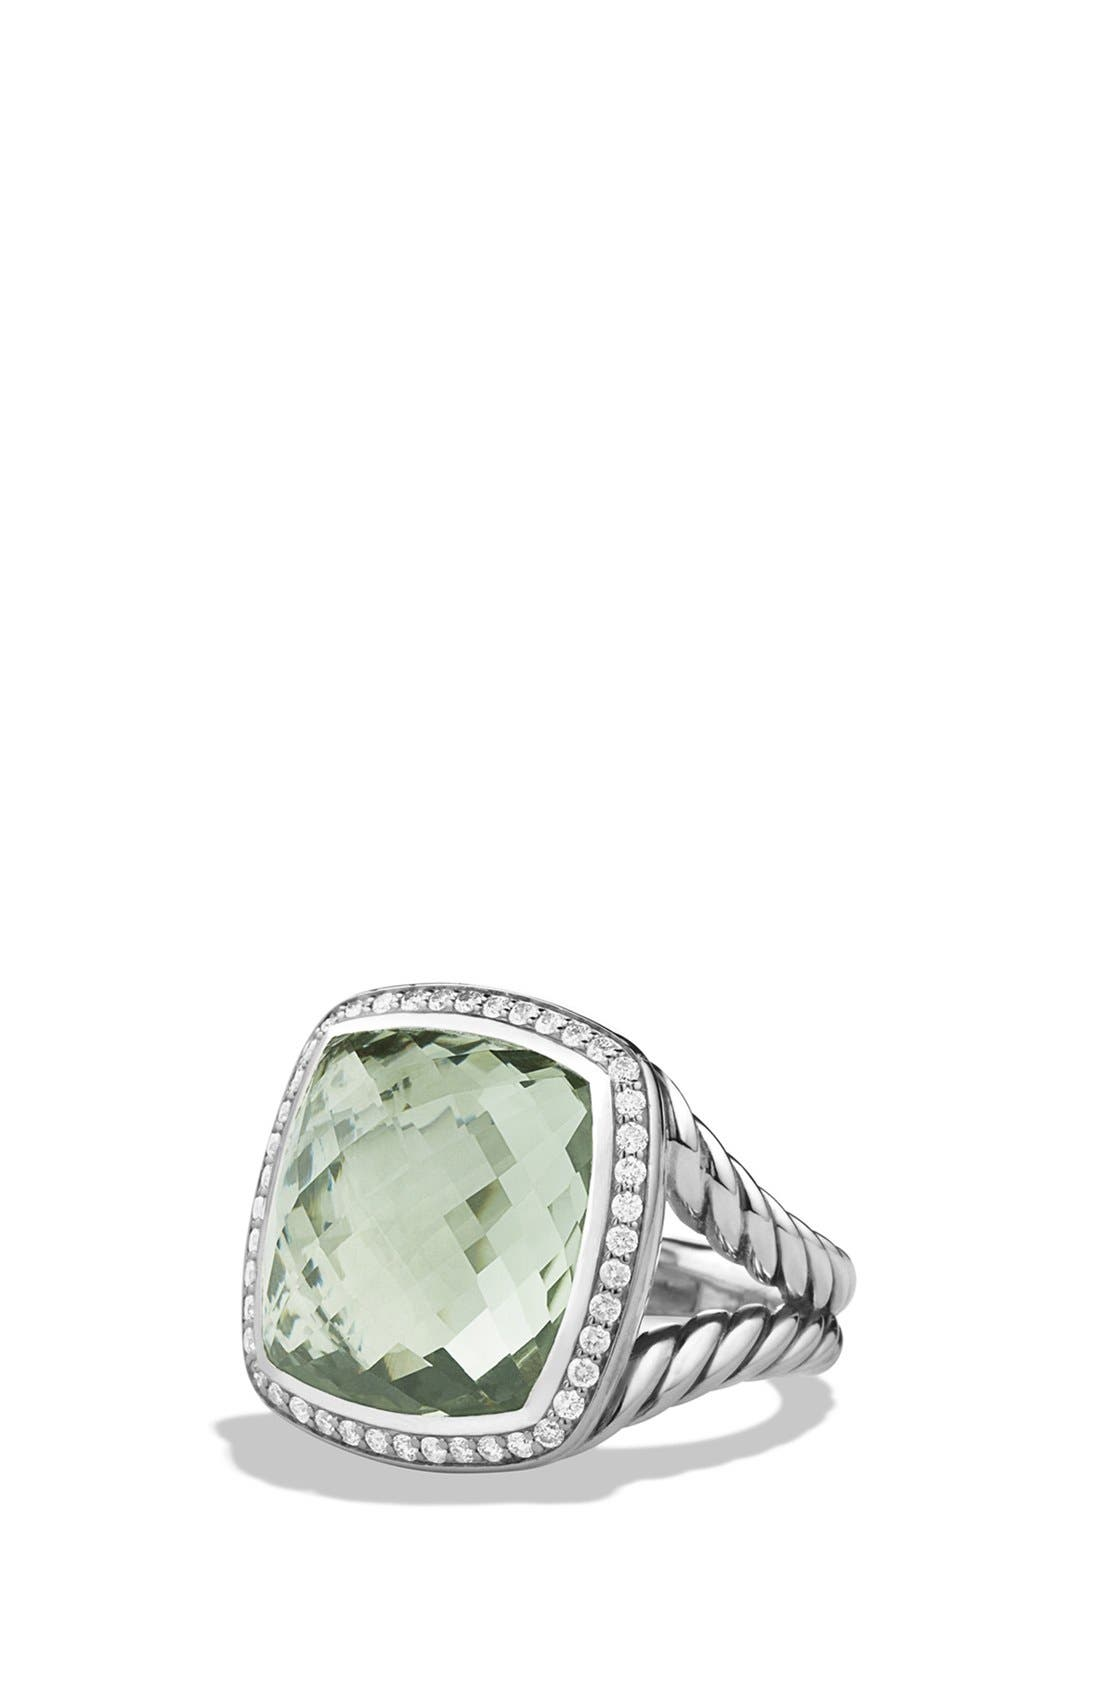 DAVID YURMAN,                             'Albion' Ring with Diamonds,                             Main thumbnail 1, color,                             PRASIOLITE